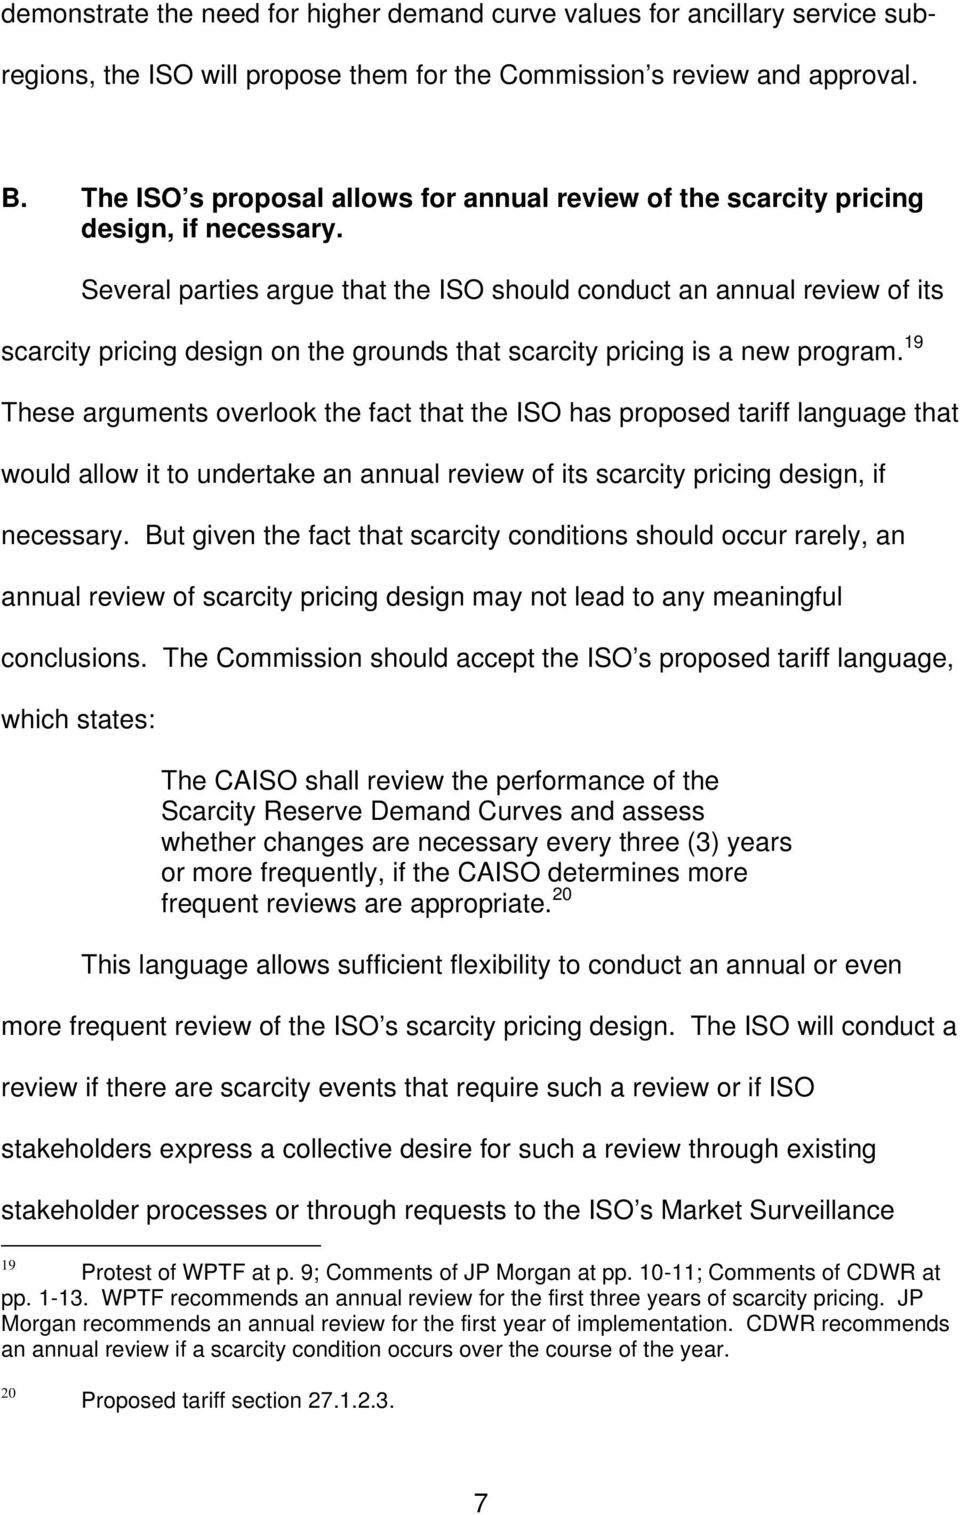 Several parties argue that the ISO should conduct an annual review of its scarcity pricing design on the grounds that scarcity pricing is a new program.